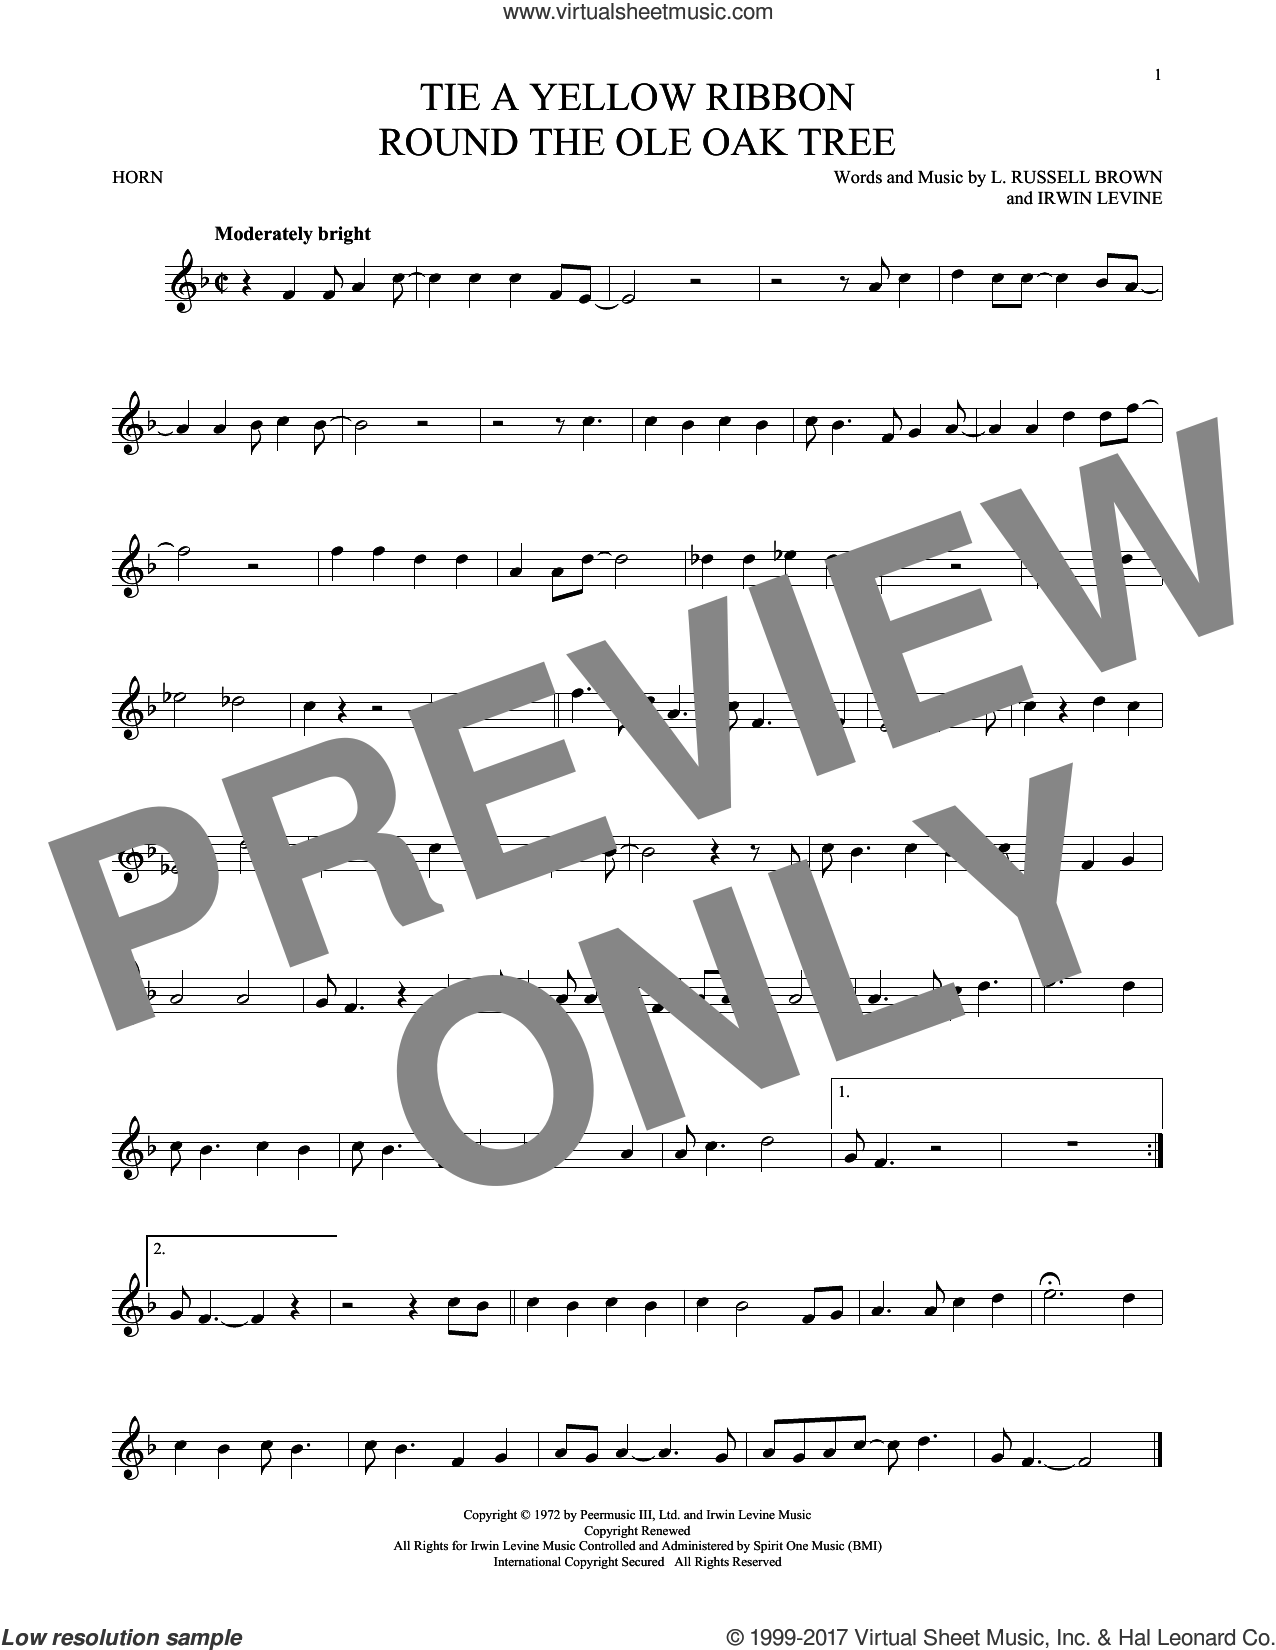 Tie A Yellow Ribbon Round The Ole Oak Tree sheet music for horn solo by Dawn featuring Tony Orlando, Irwin Levine and L. Russell Brown, intermediate. Score Image Preview.